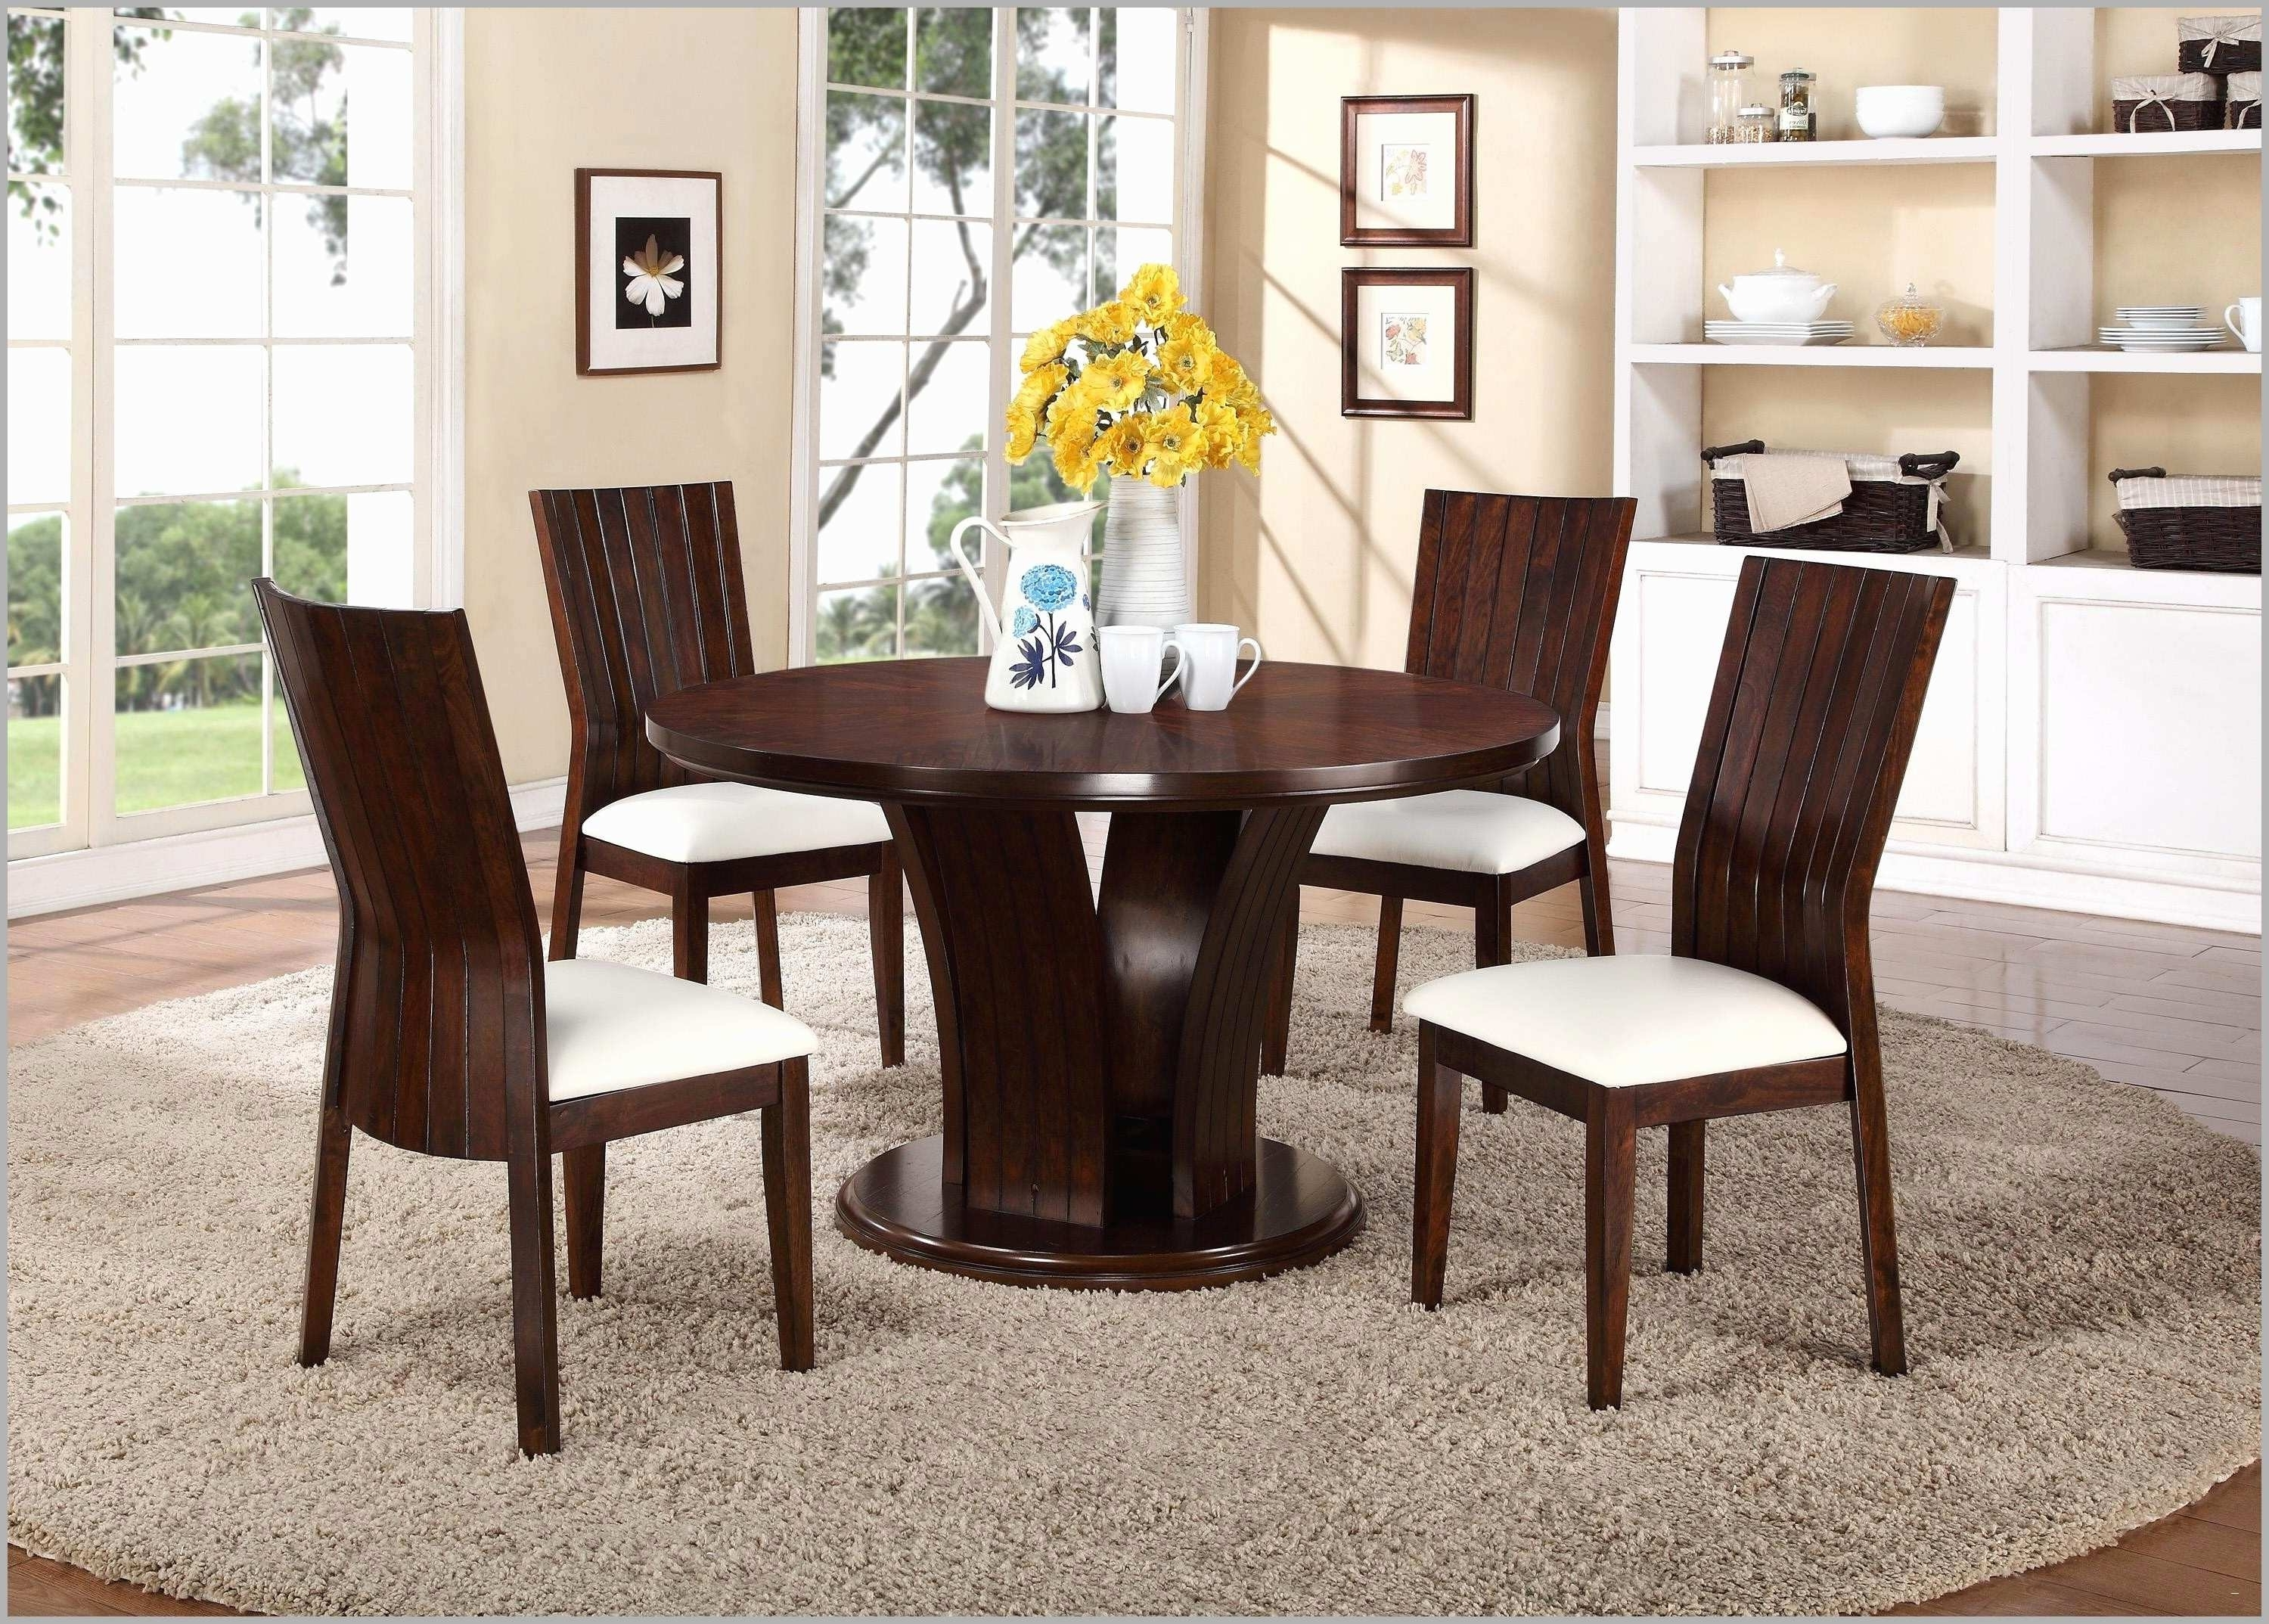 10 Seater Dining Tables And Chairs Regarding Well Known Top 24 Beautiful 10 Seater Dining Table And Chairs – Welovedandelion (Gallery 4 of 25)